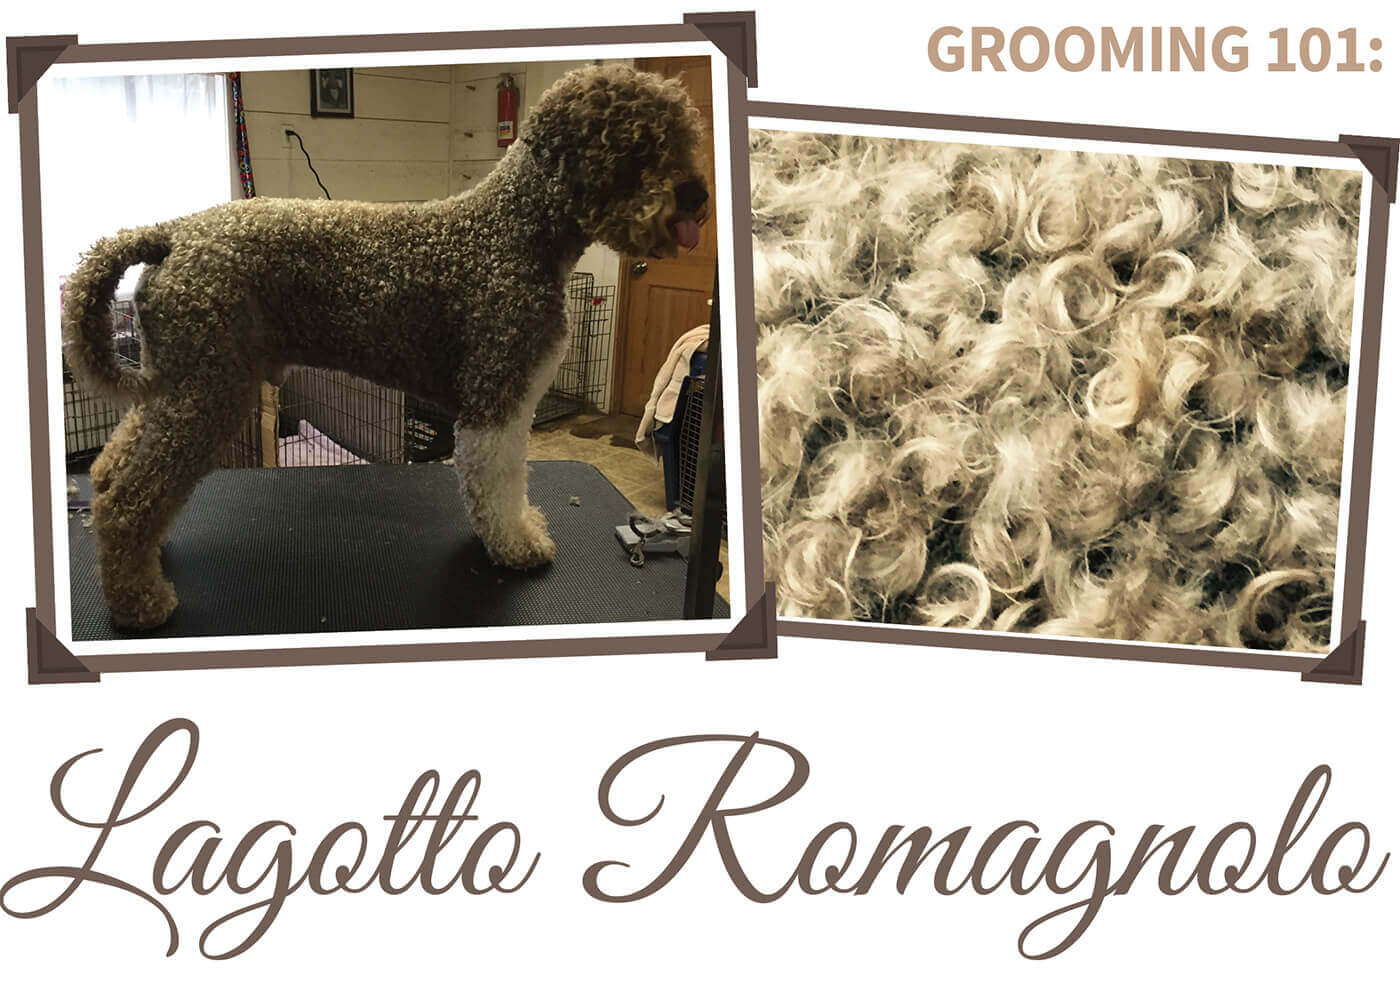 Lagotto Romagnolo Groomer To Groomer Pet Grooming News